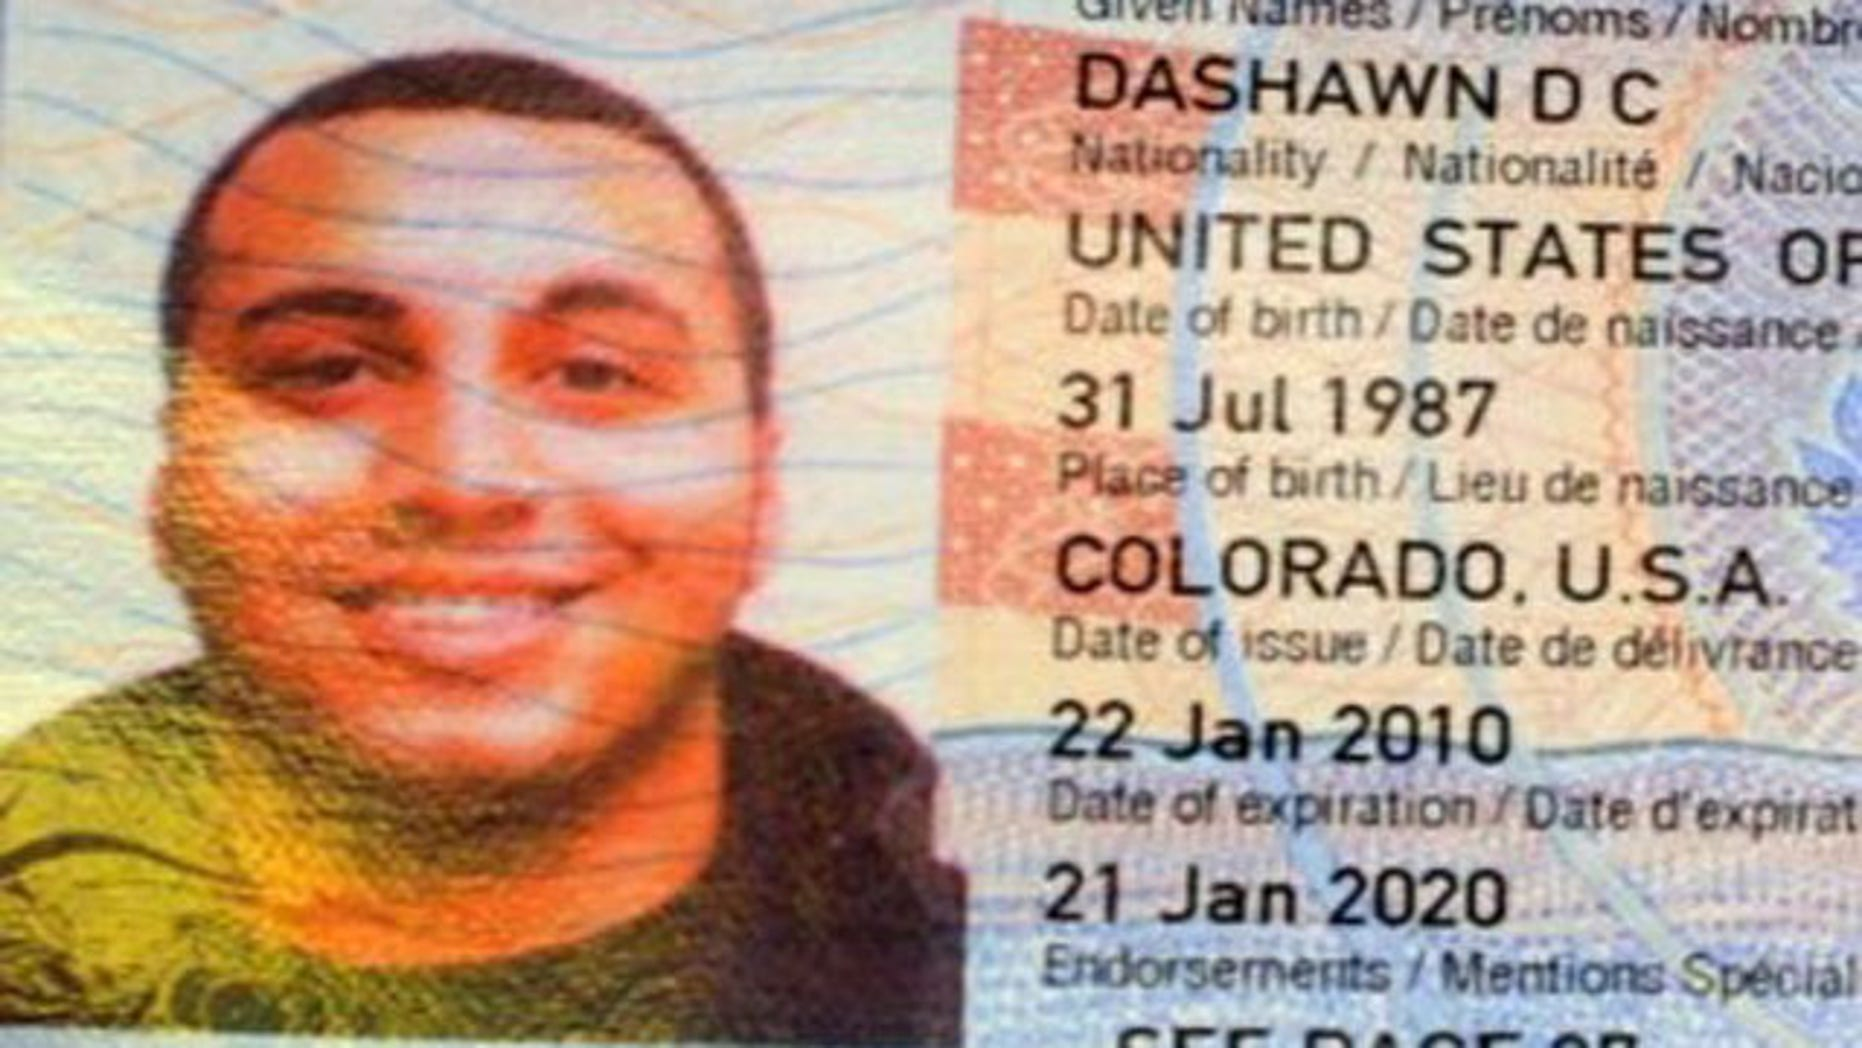 The body of 23-year-old Dashawn Longfellow, a former U.S. marine, was found at the Yanui Paradise Resort with several stab wounds in his chest.